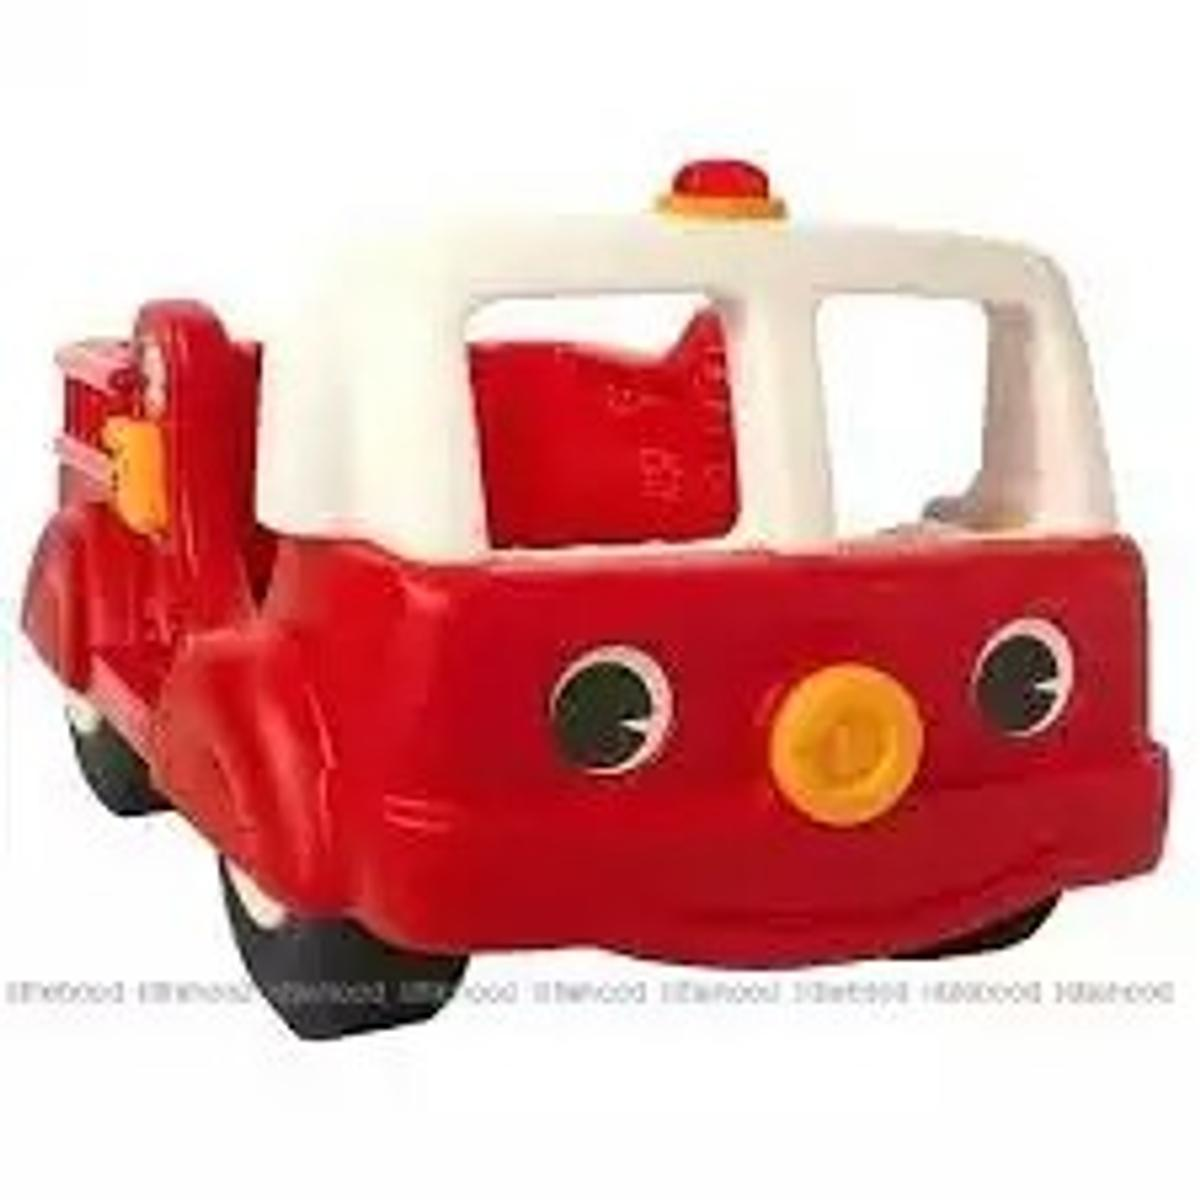 Fire Engine Toddler Bed.Plastic Fire Engine Bed